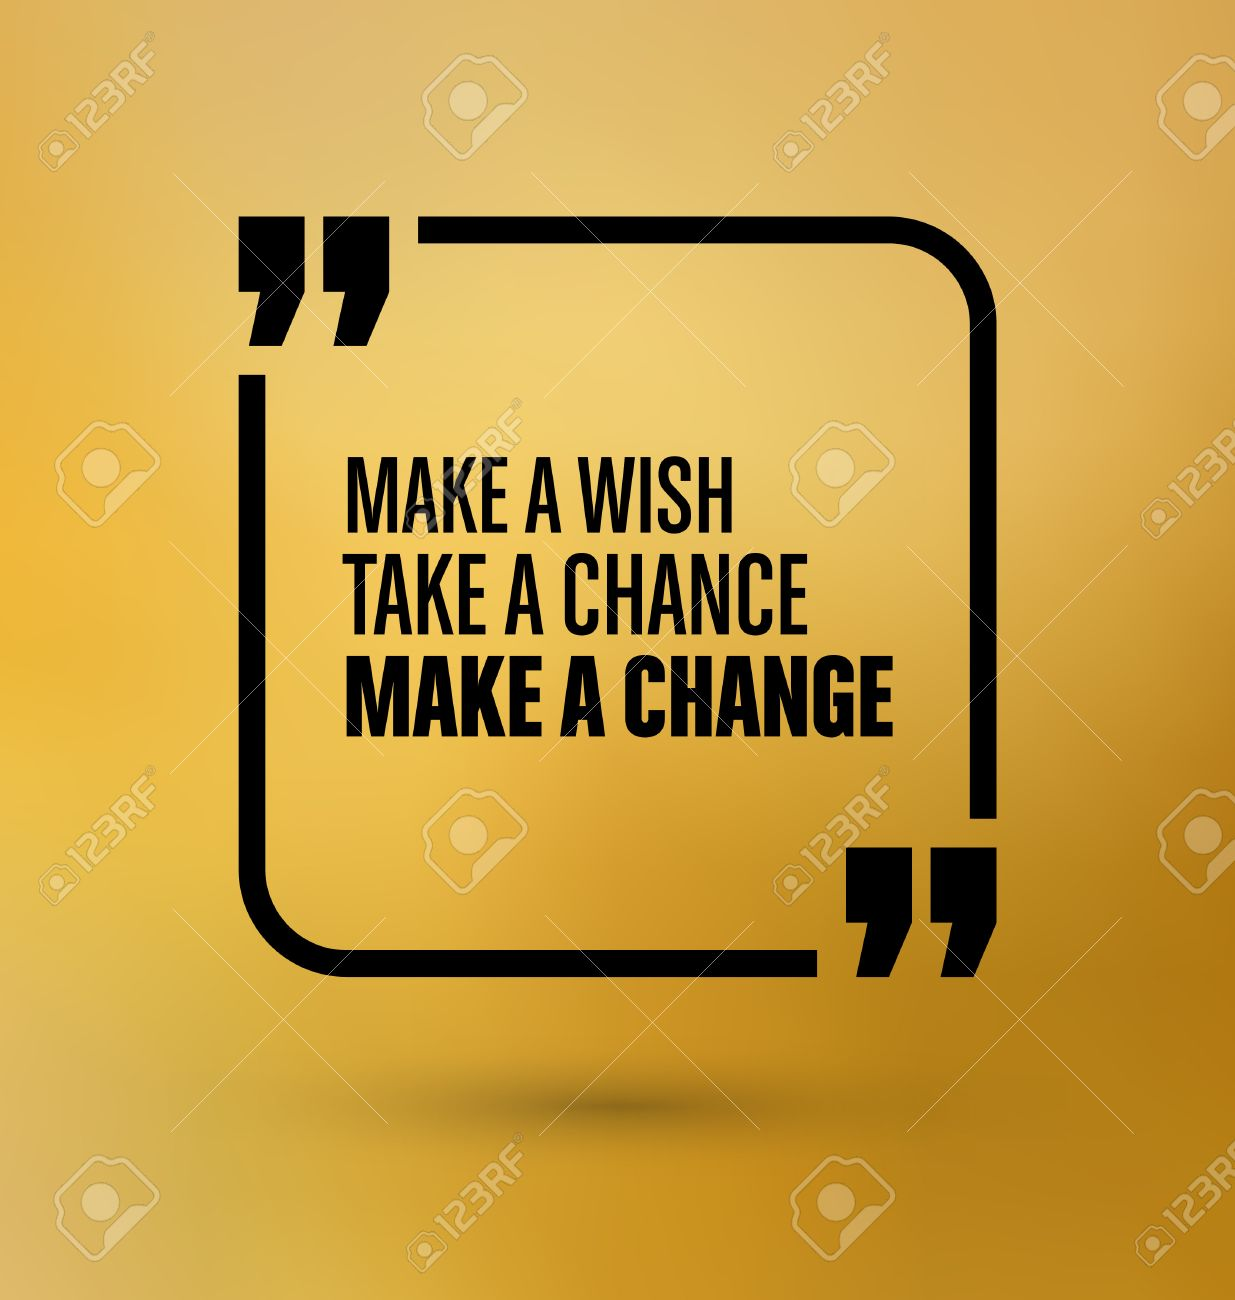 Framed Quote on Gold Yellow Background   Make a wish take a chance..